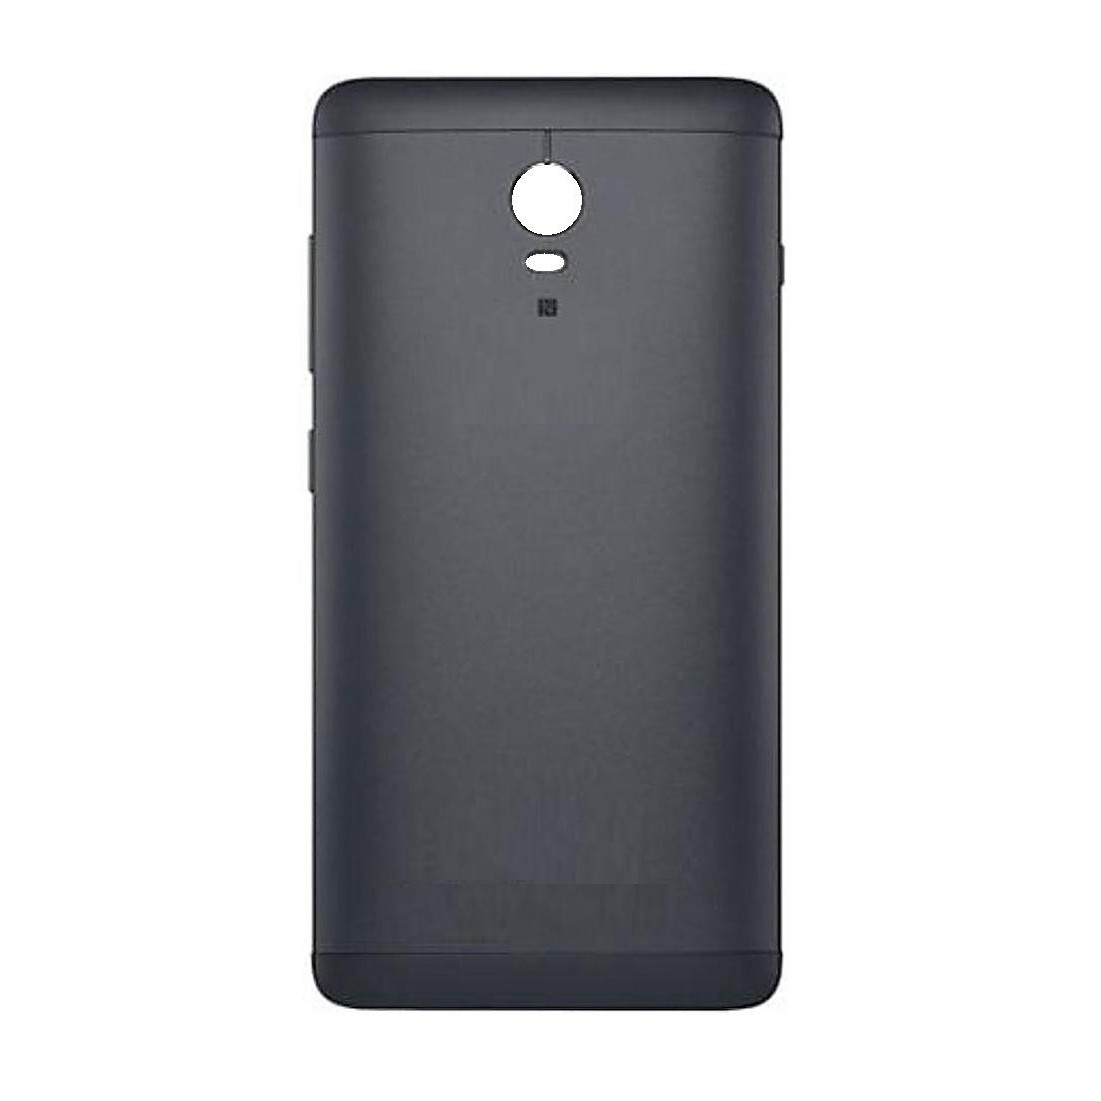 timeless design 10e09 b4d2b Back Panel Cover for Lenovo Vibe P1 Turbo - Grey